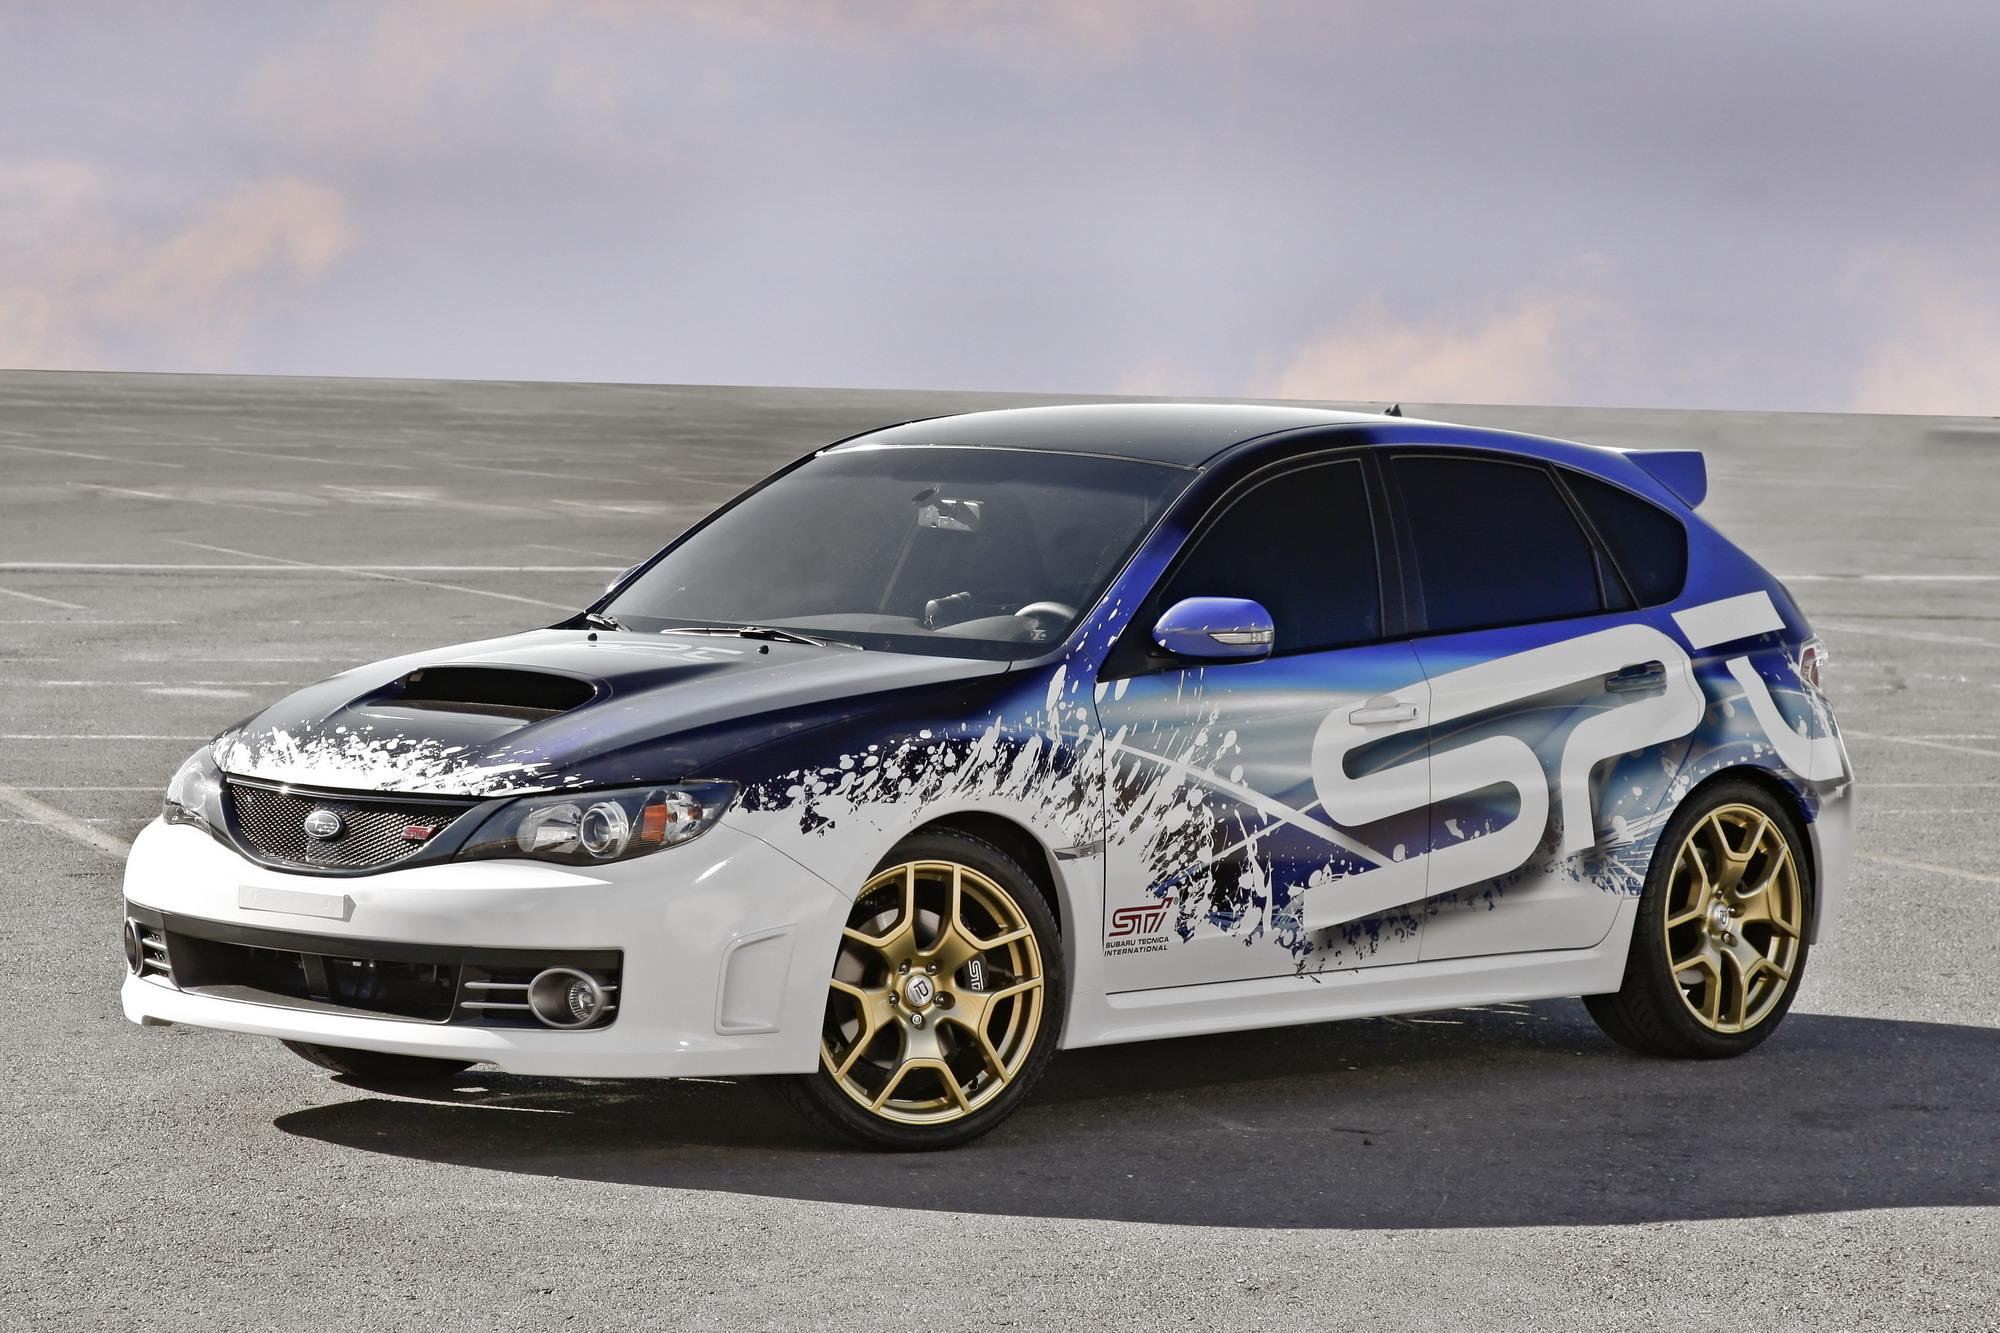 2009 subaru wrx sti by spt pictures photos wallpapers top speed. Black Bedroom Furniture Sets. Home Design Ideas